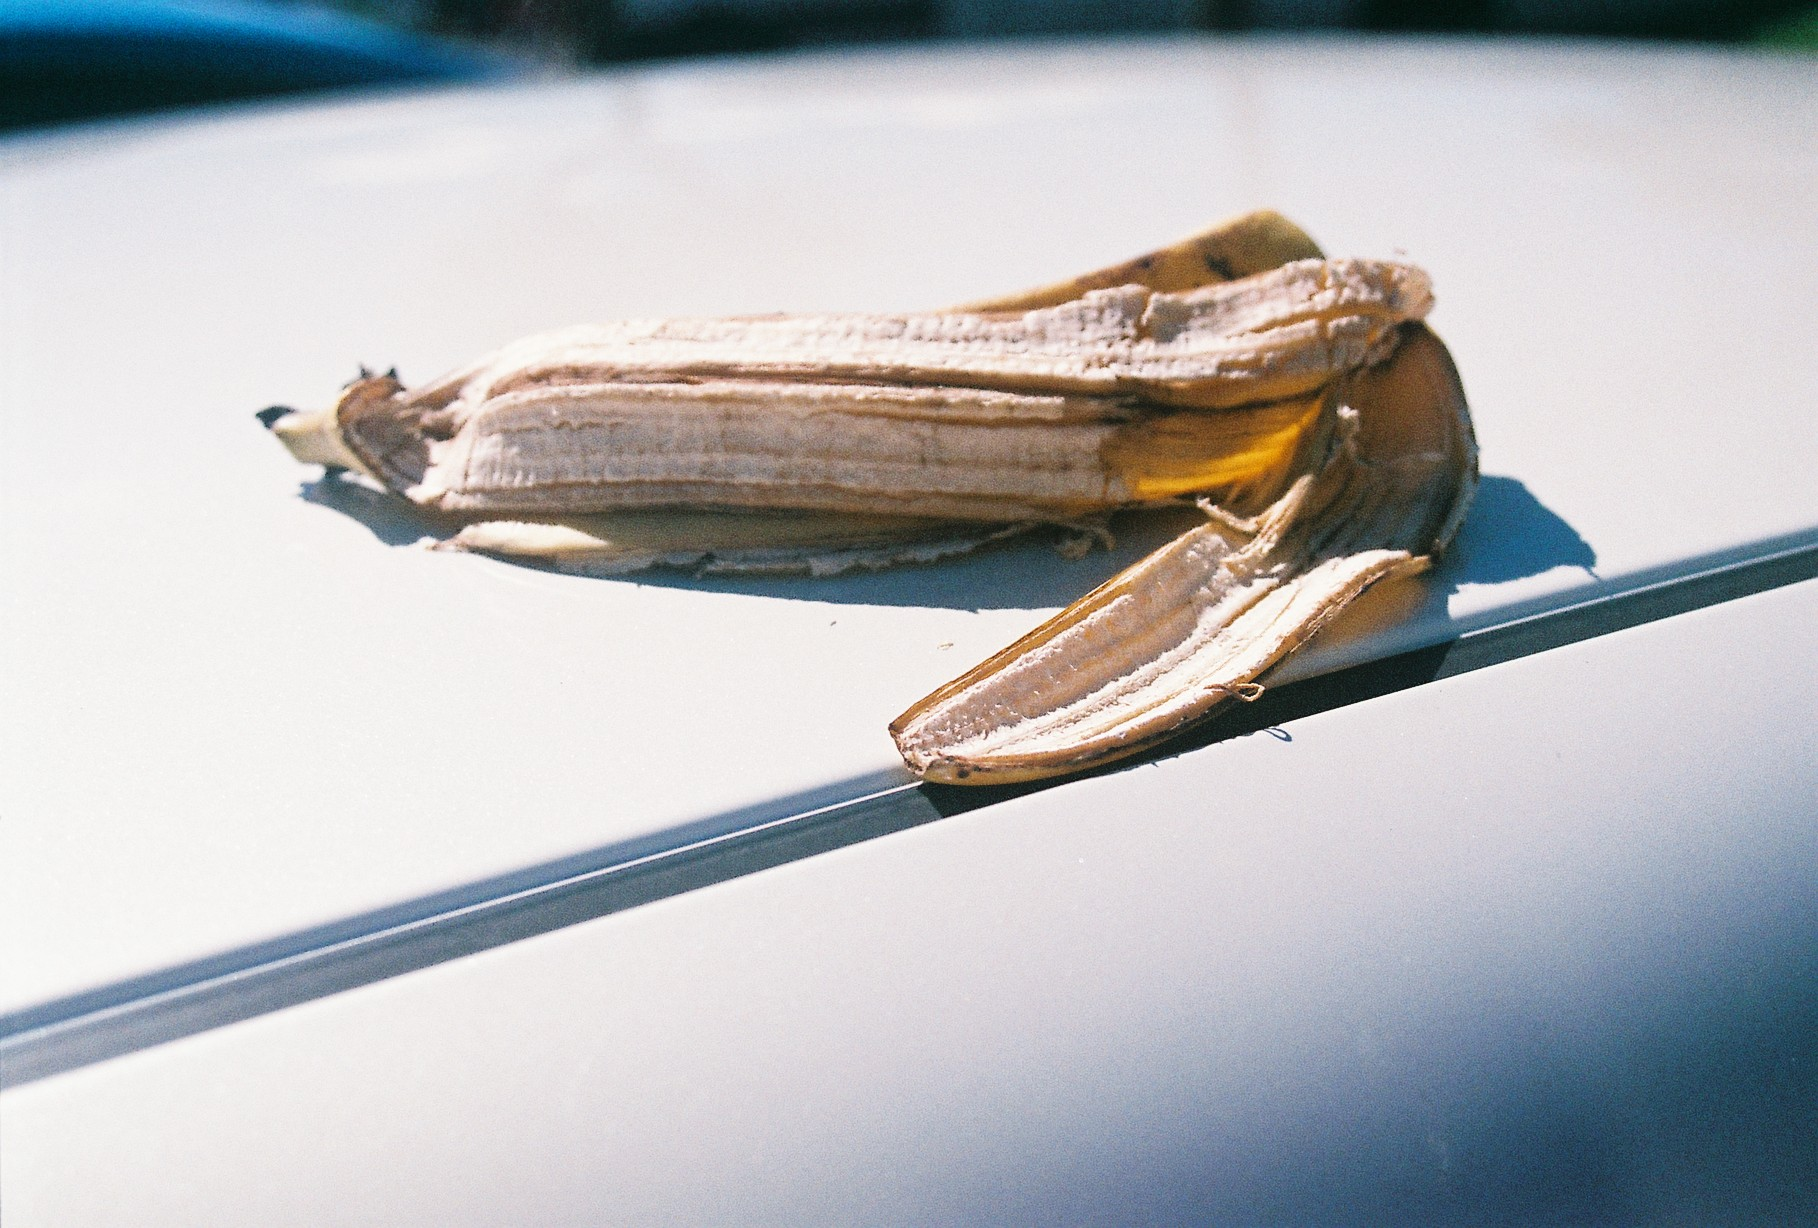 a banana skin on the roof of a white car